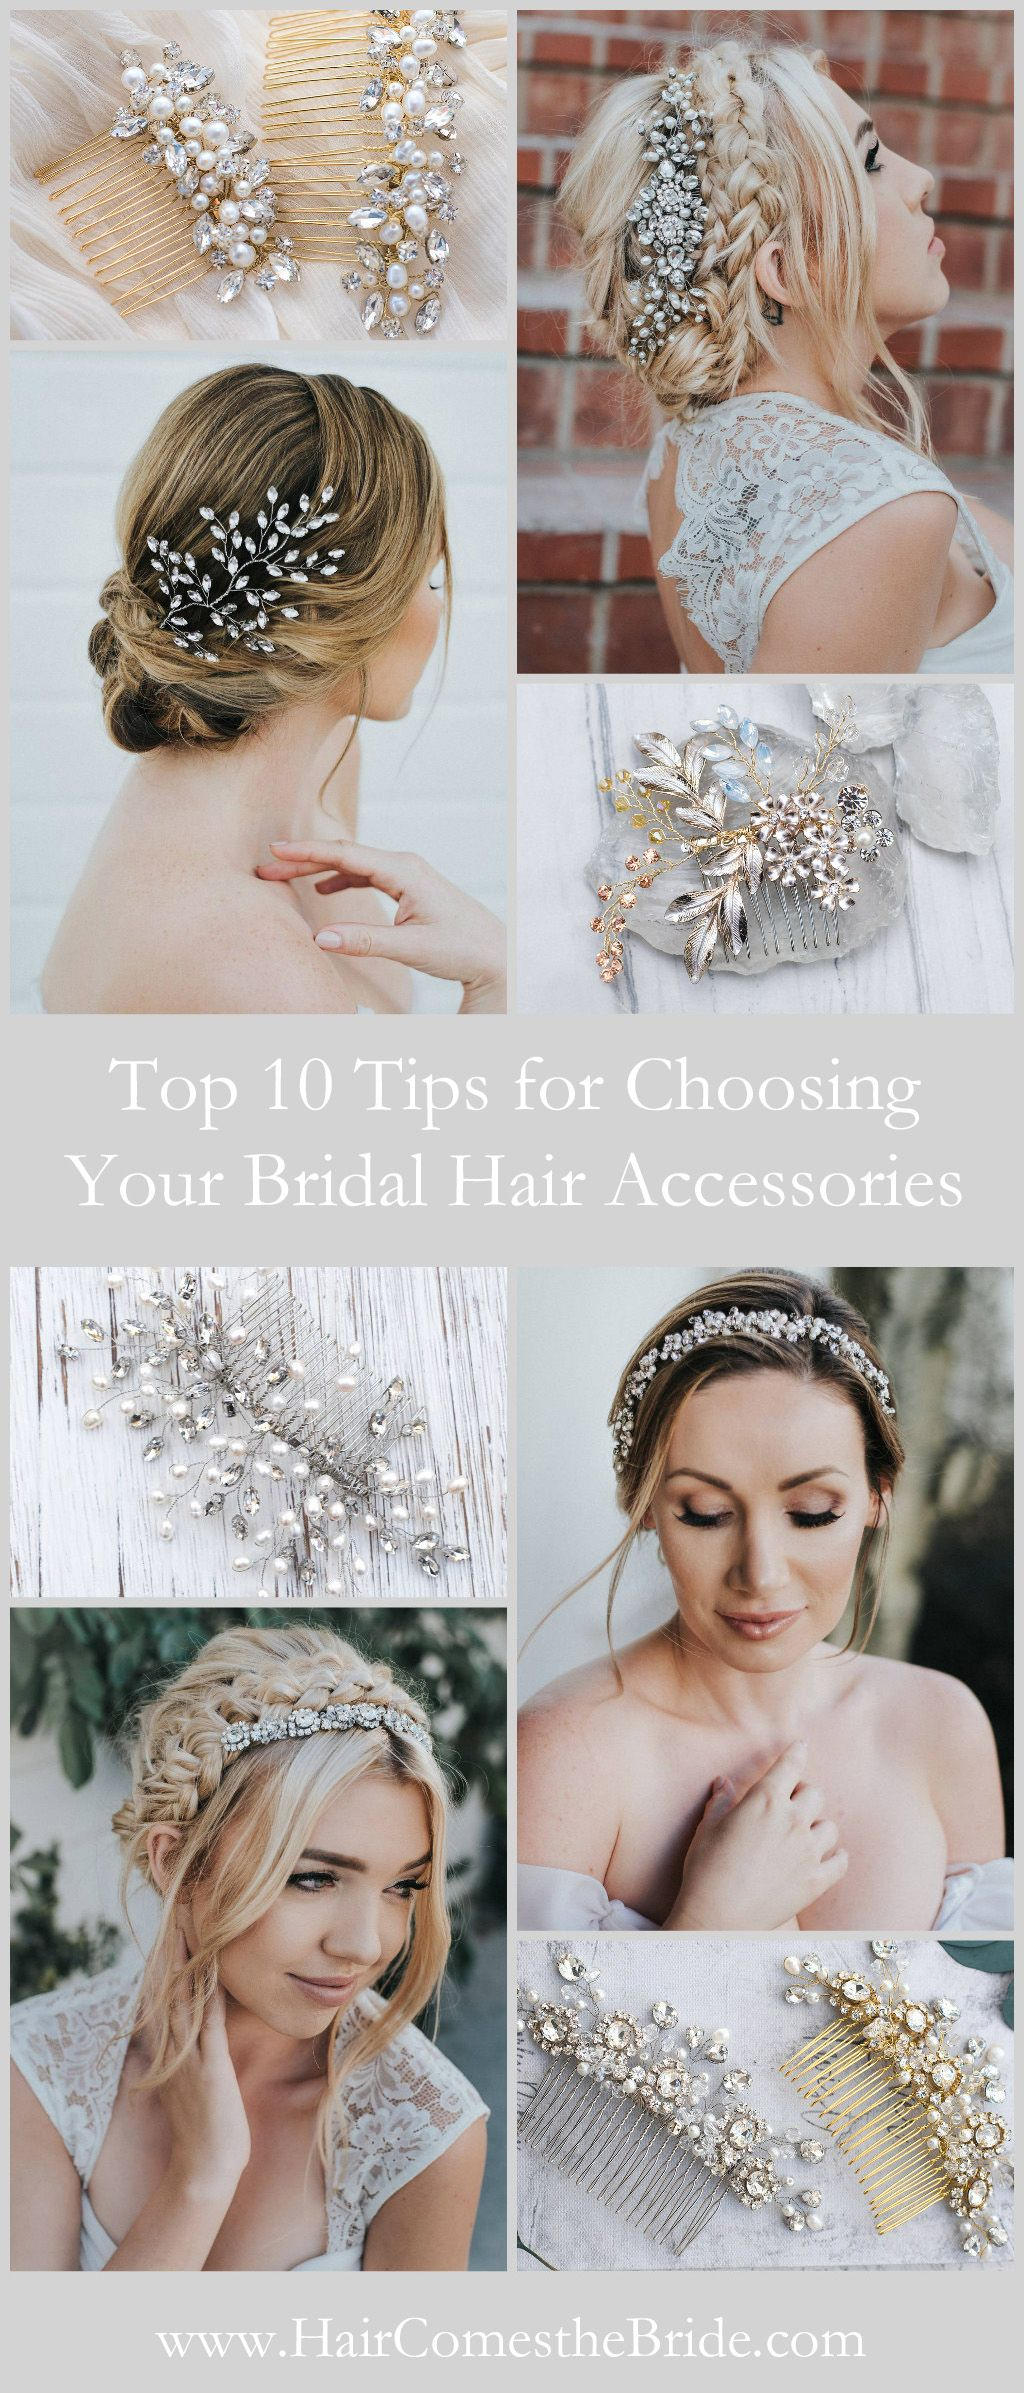 Top tips for choosing your bridal hair accessories perfect